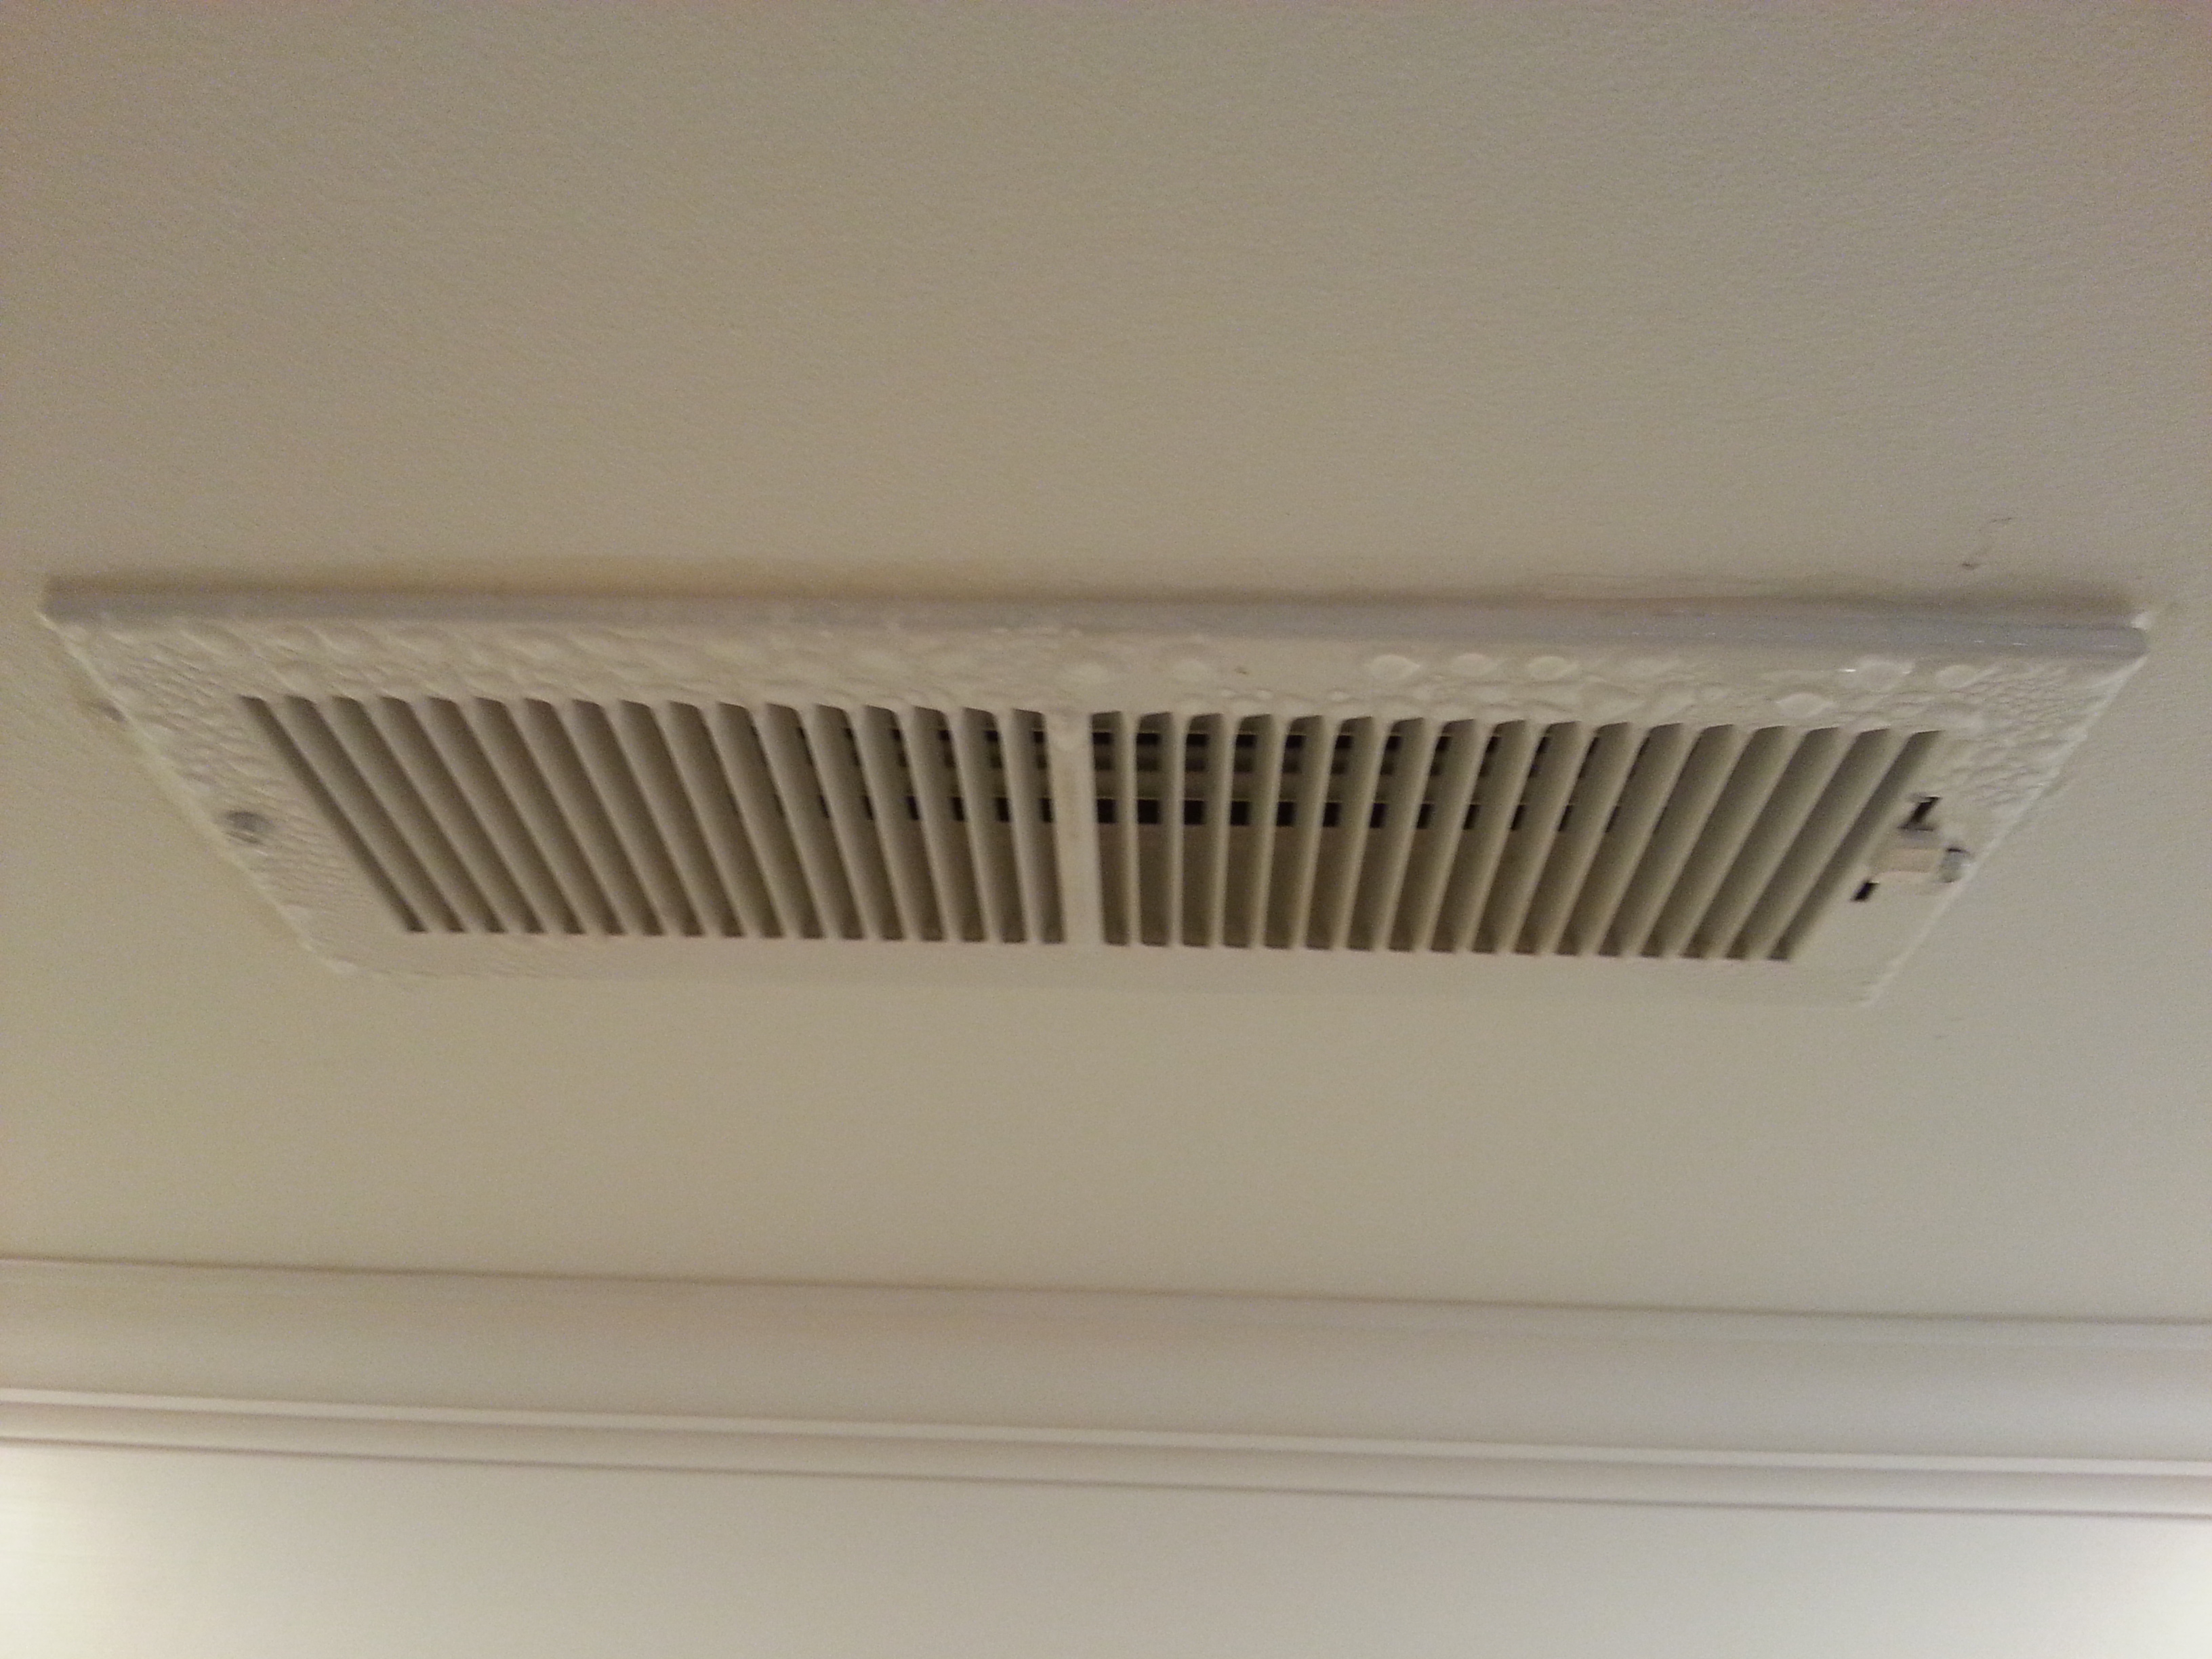 Condensation On Ceiling Hvac Diffusers Grill Heat Installed Rh City Data Com Air Conditioner Vent Deflector